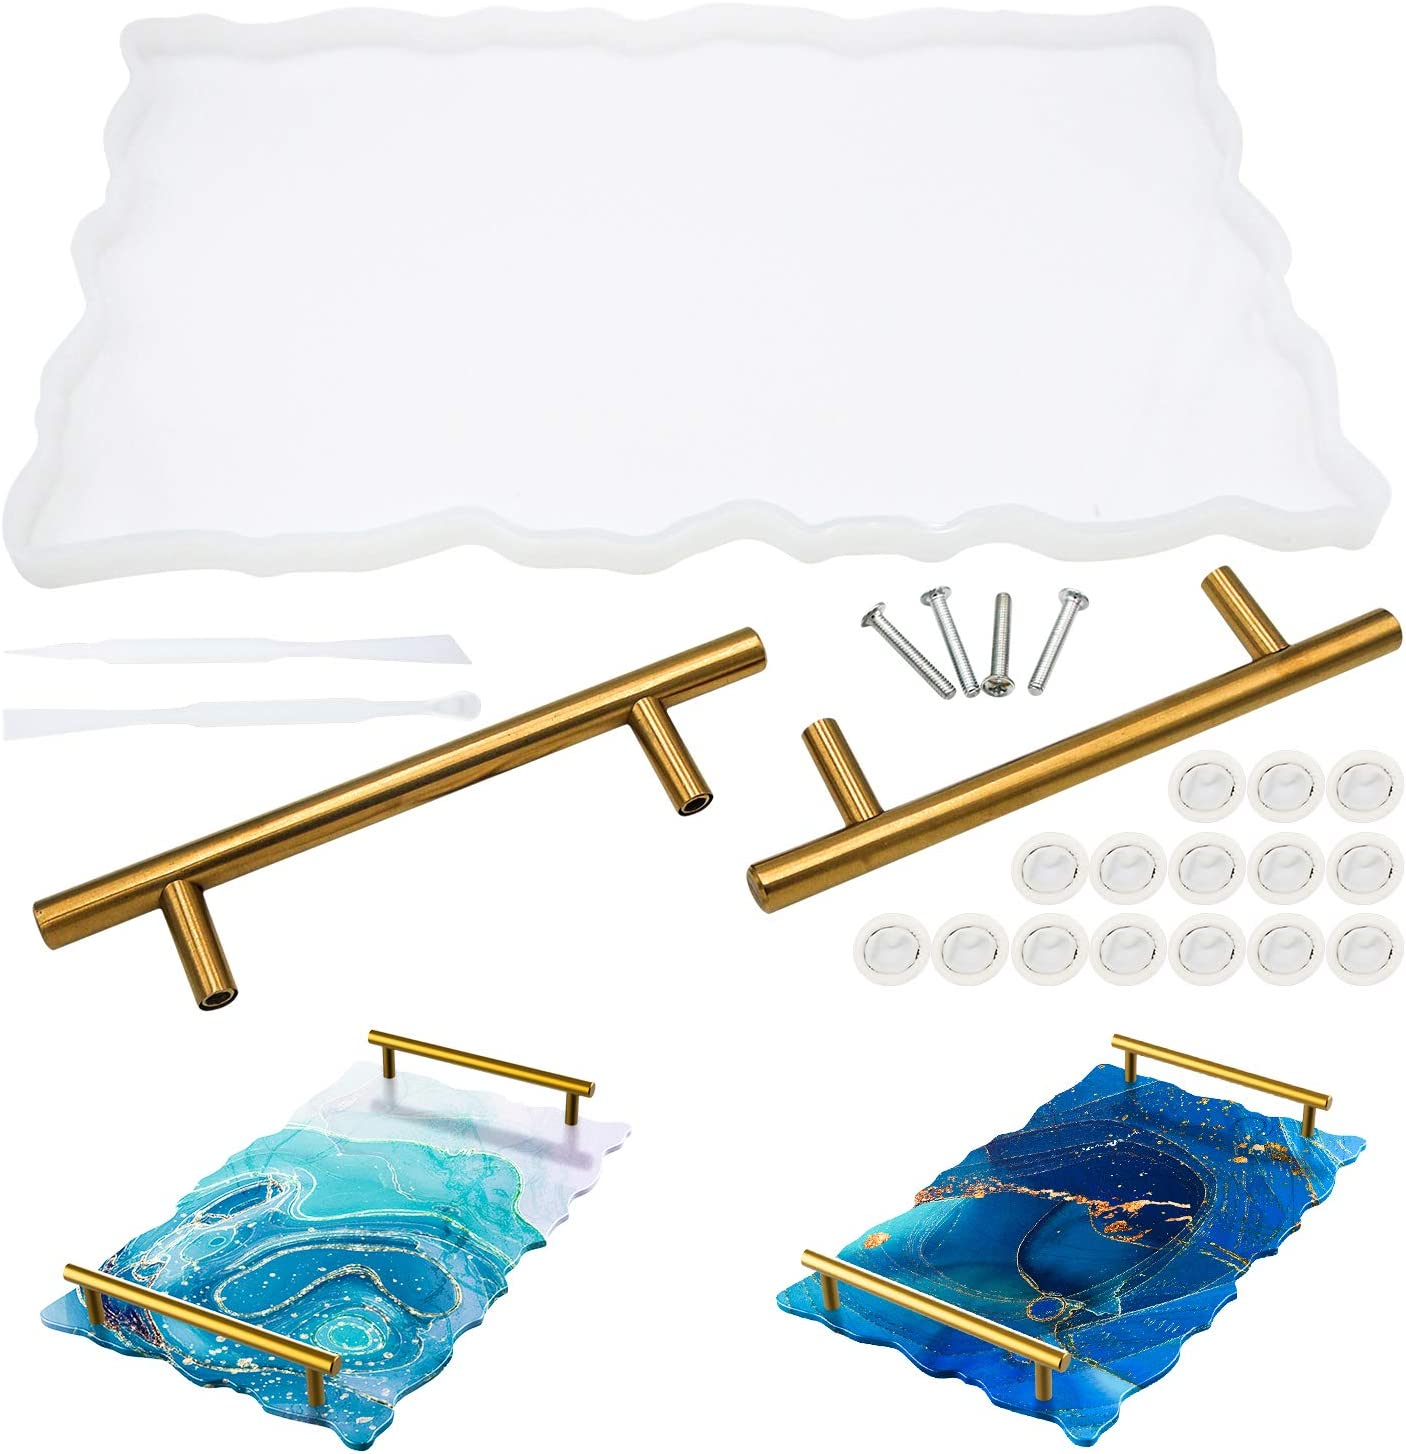 Silicone Resin Tray Molds Thrilez 1Pcs Resin Tray Molds and 4 Pcs Coaster Molds for Resin Casting with 2pcs Gold Handles